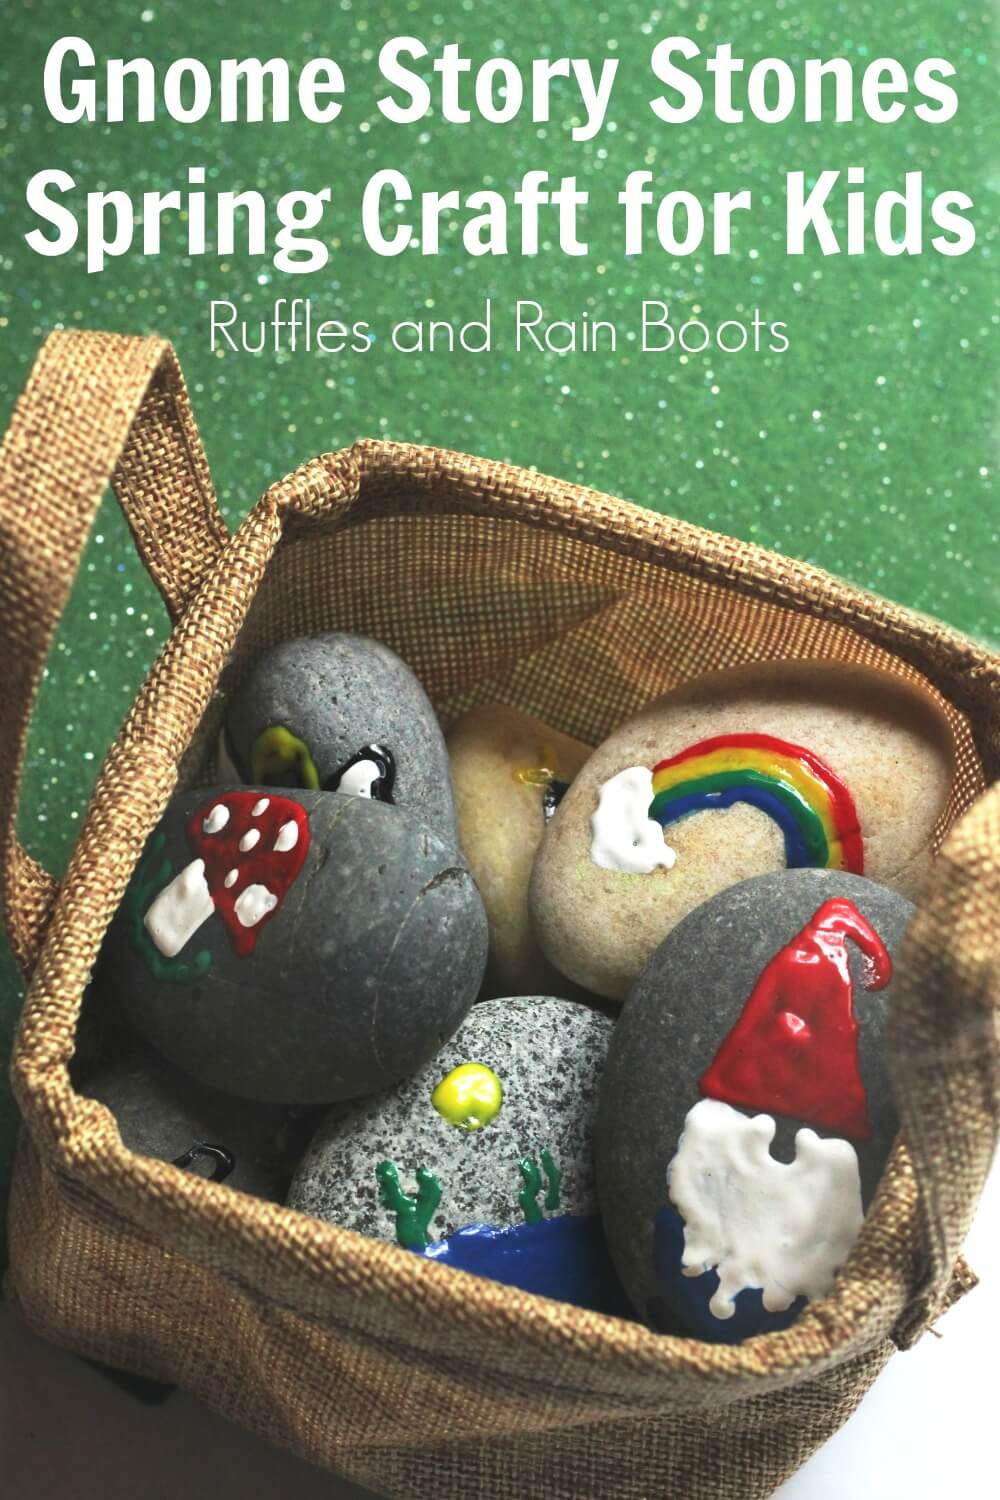 completed garden gnome story stones together in a basket with text Gnome Story Tones Spring Craft for Kids